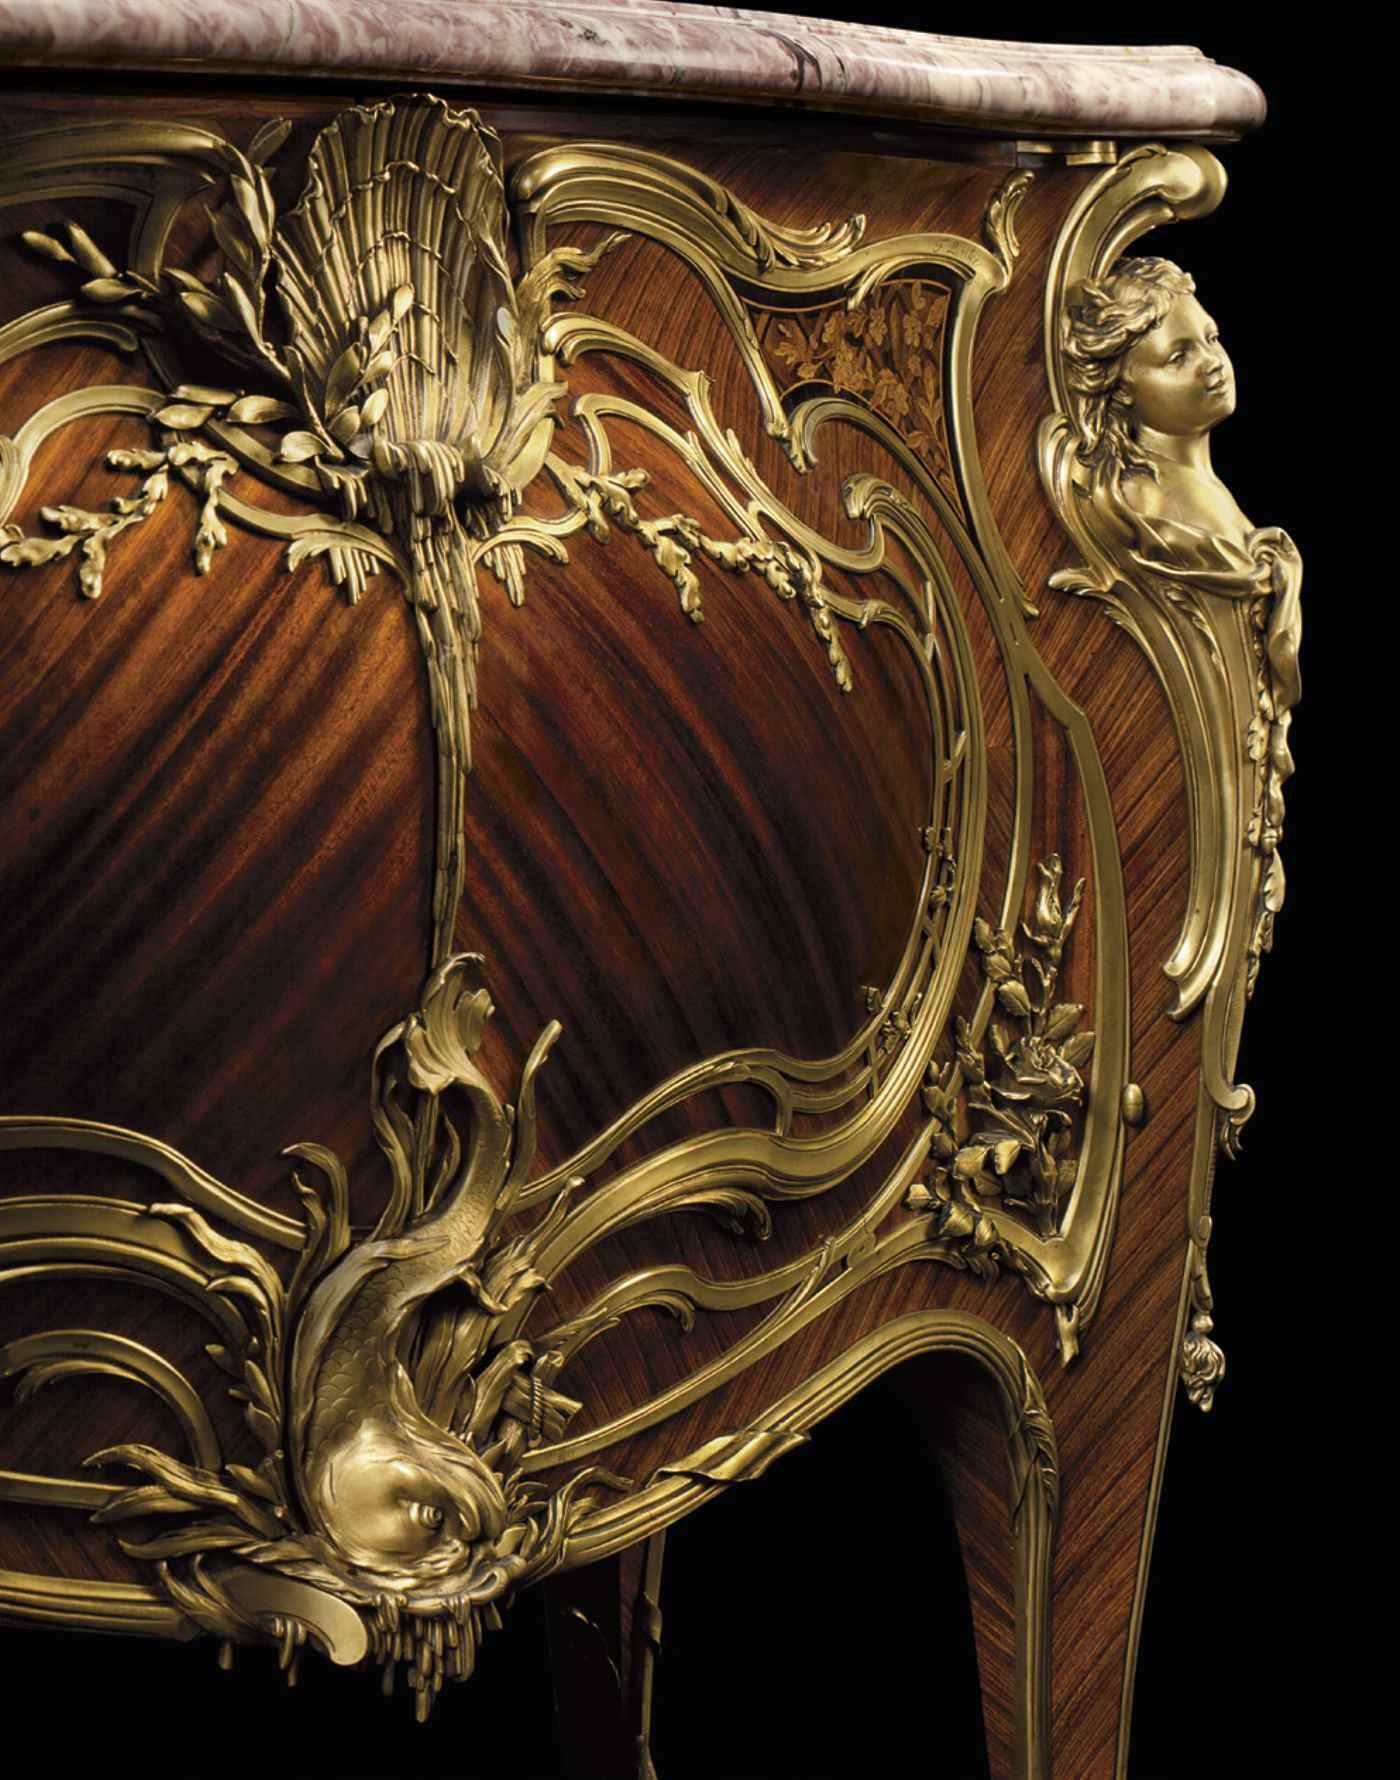 Opulence auction at Christies